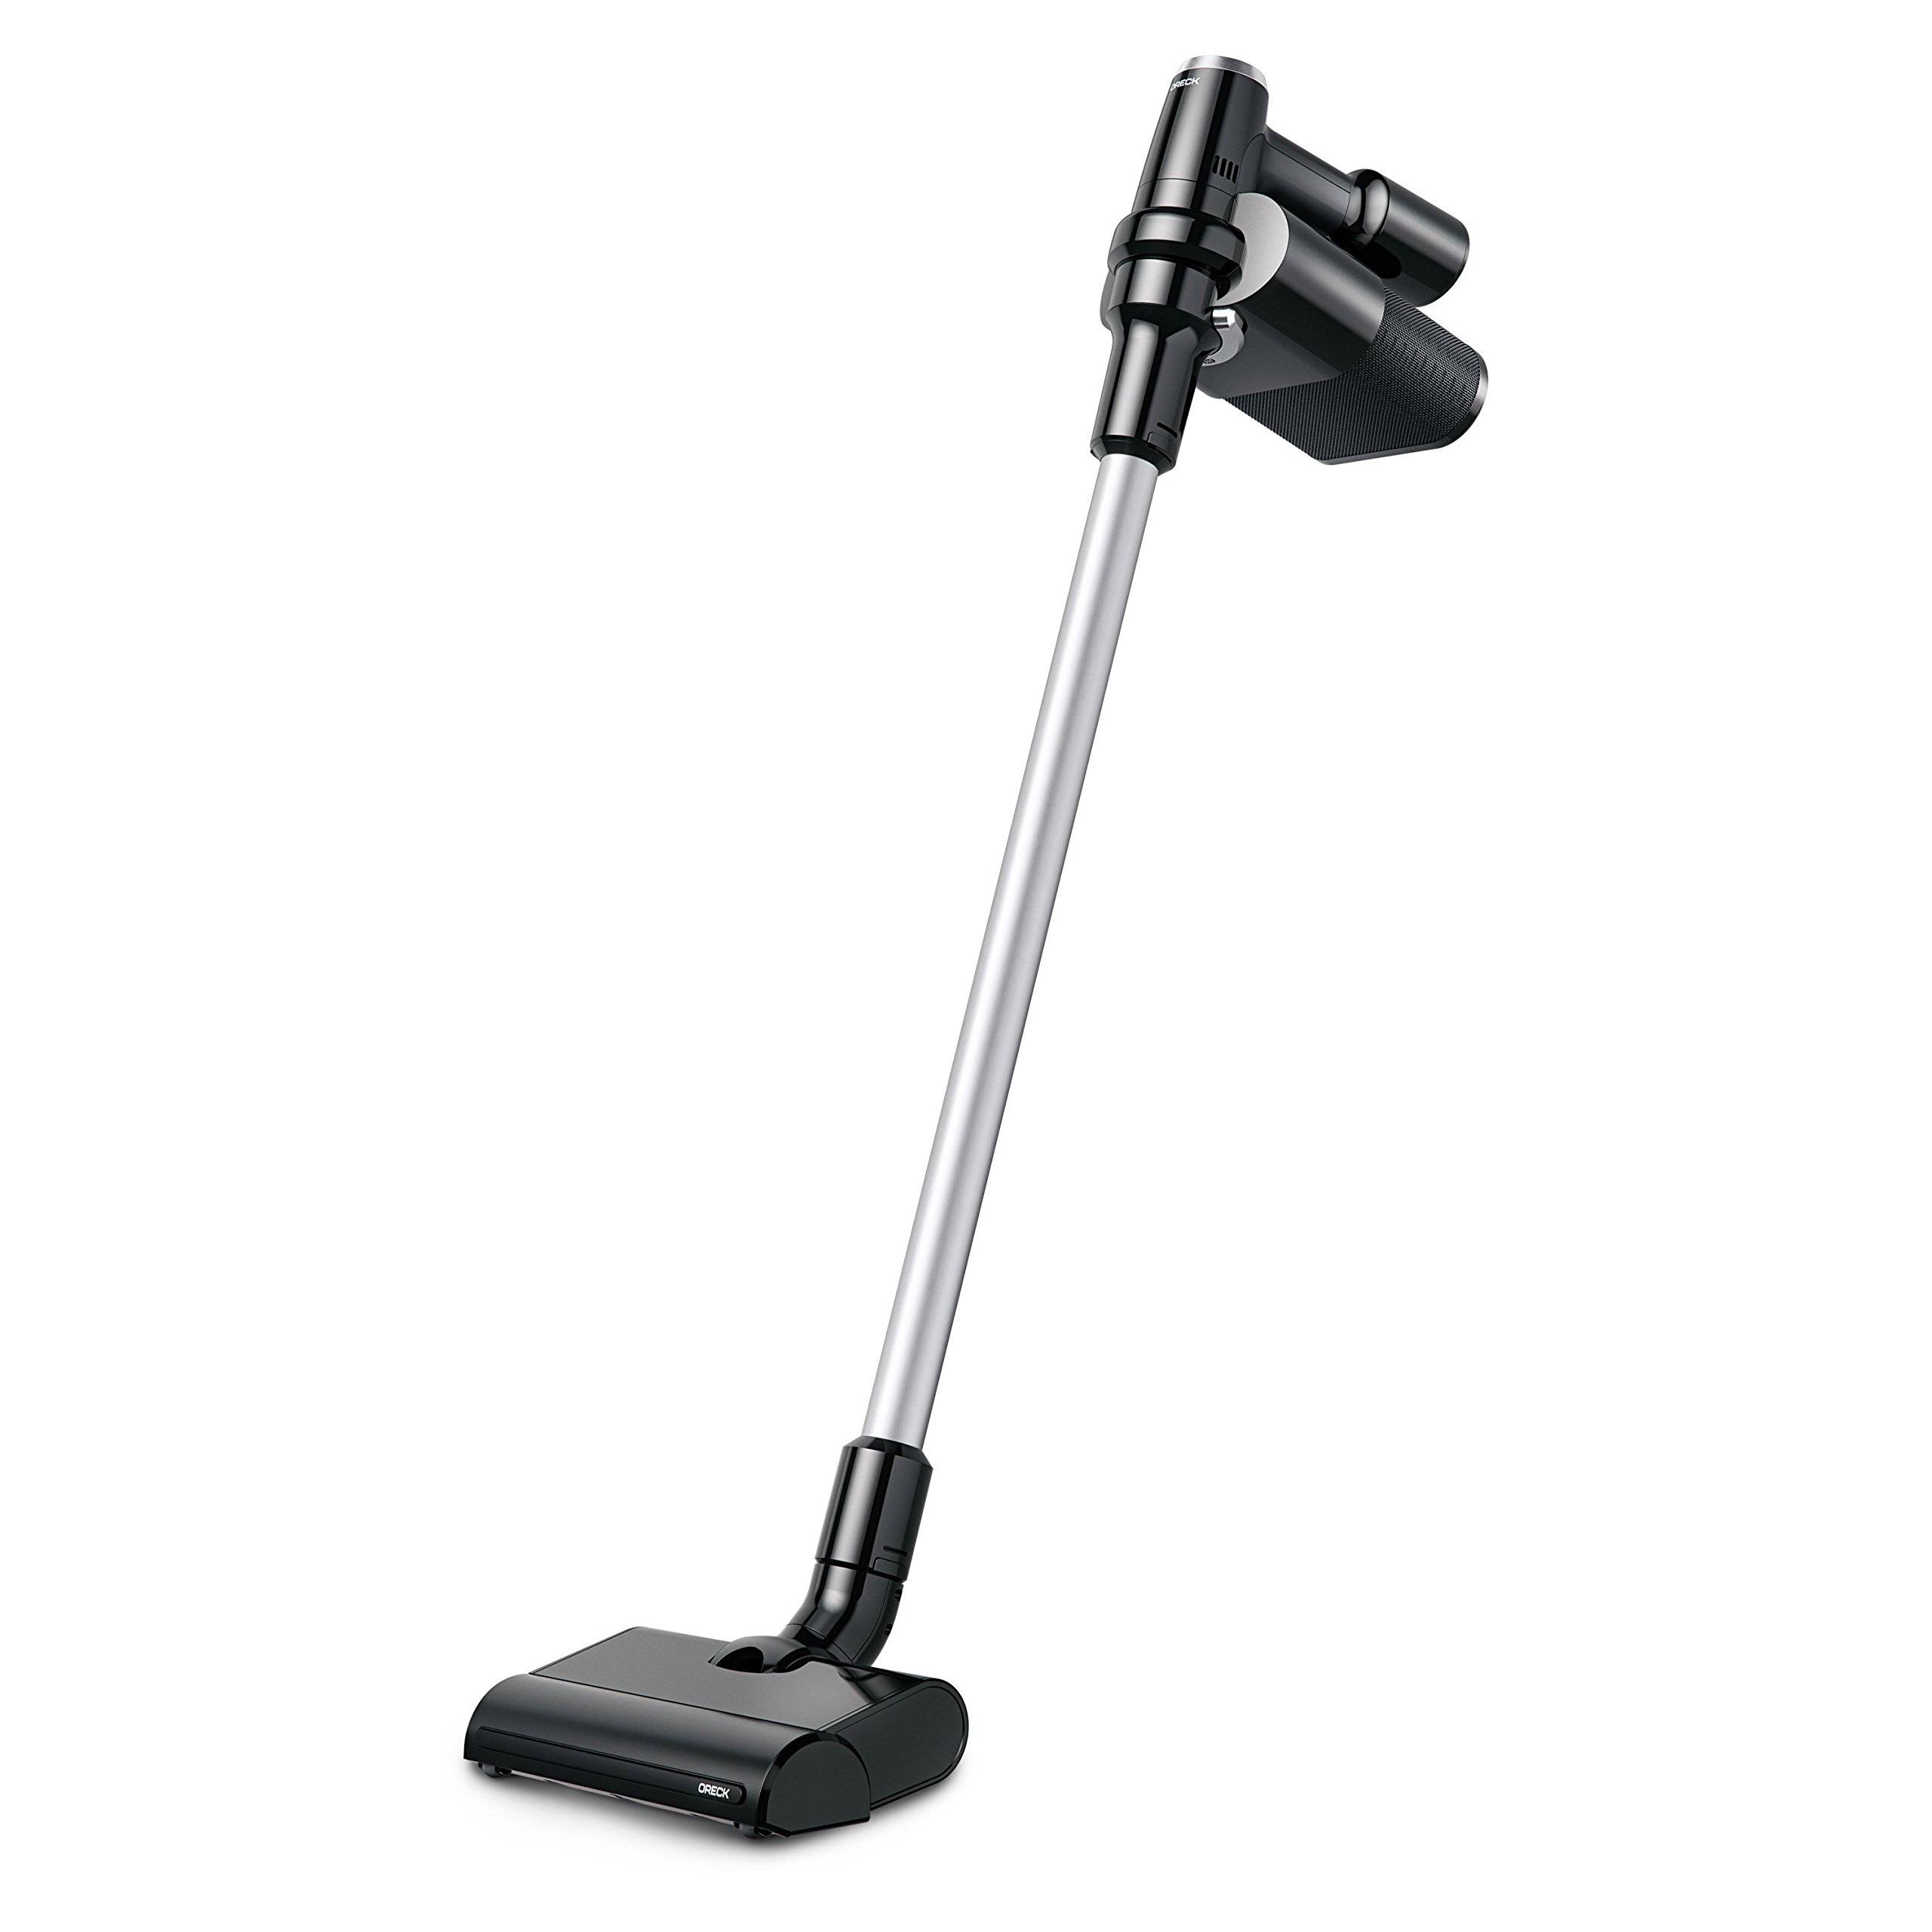 Oreck Cordless Vacuum - With POD Technology, Black